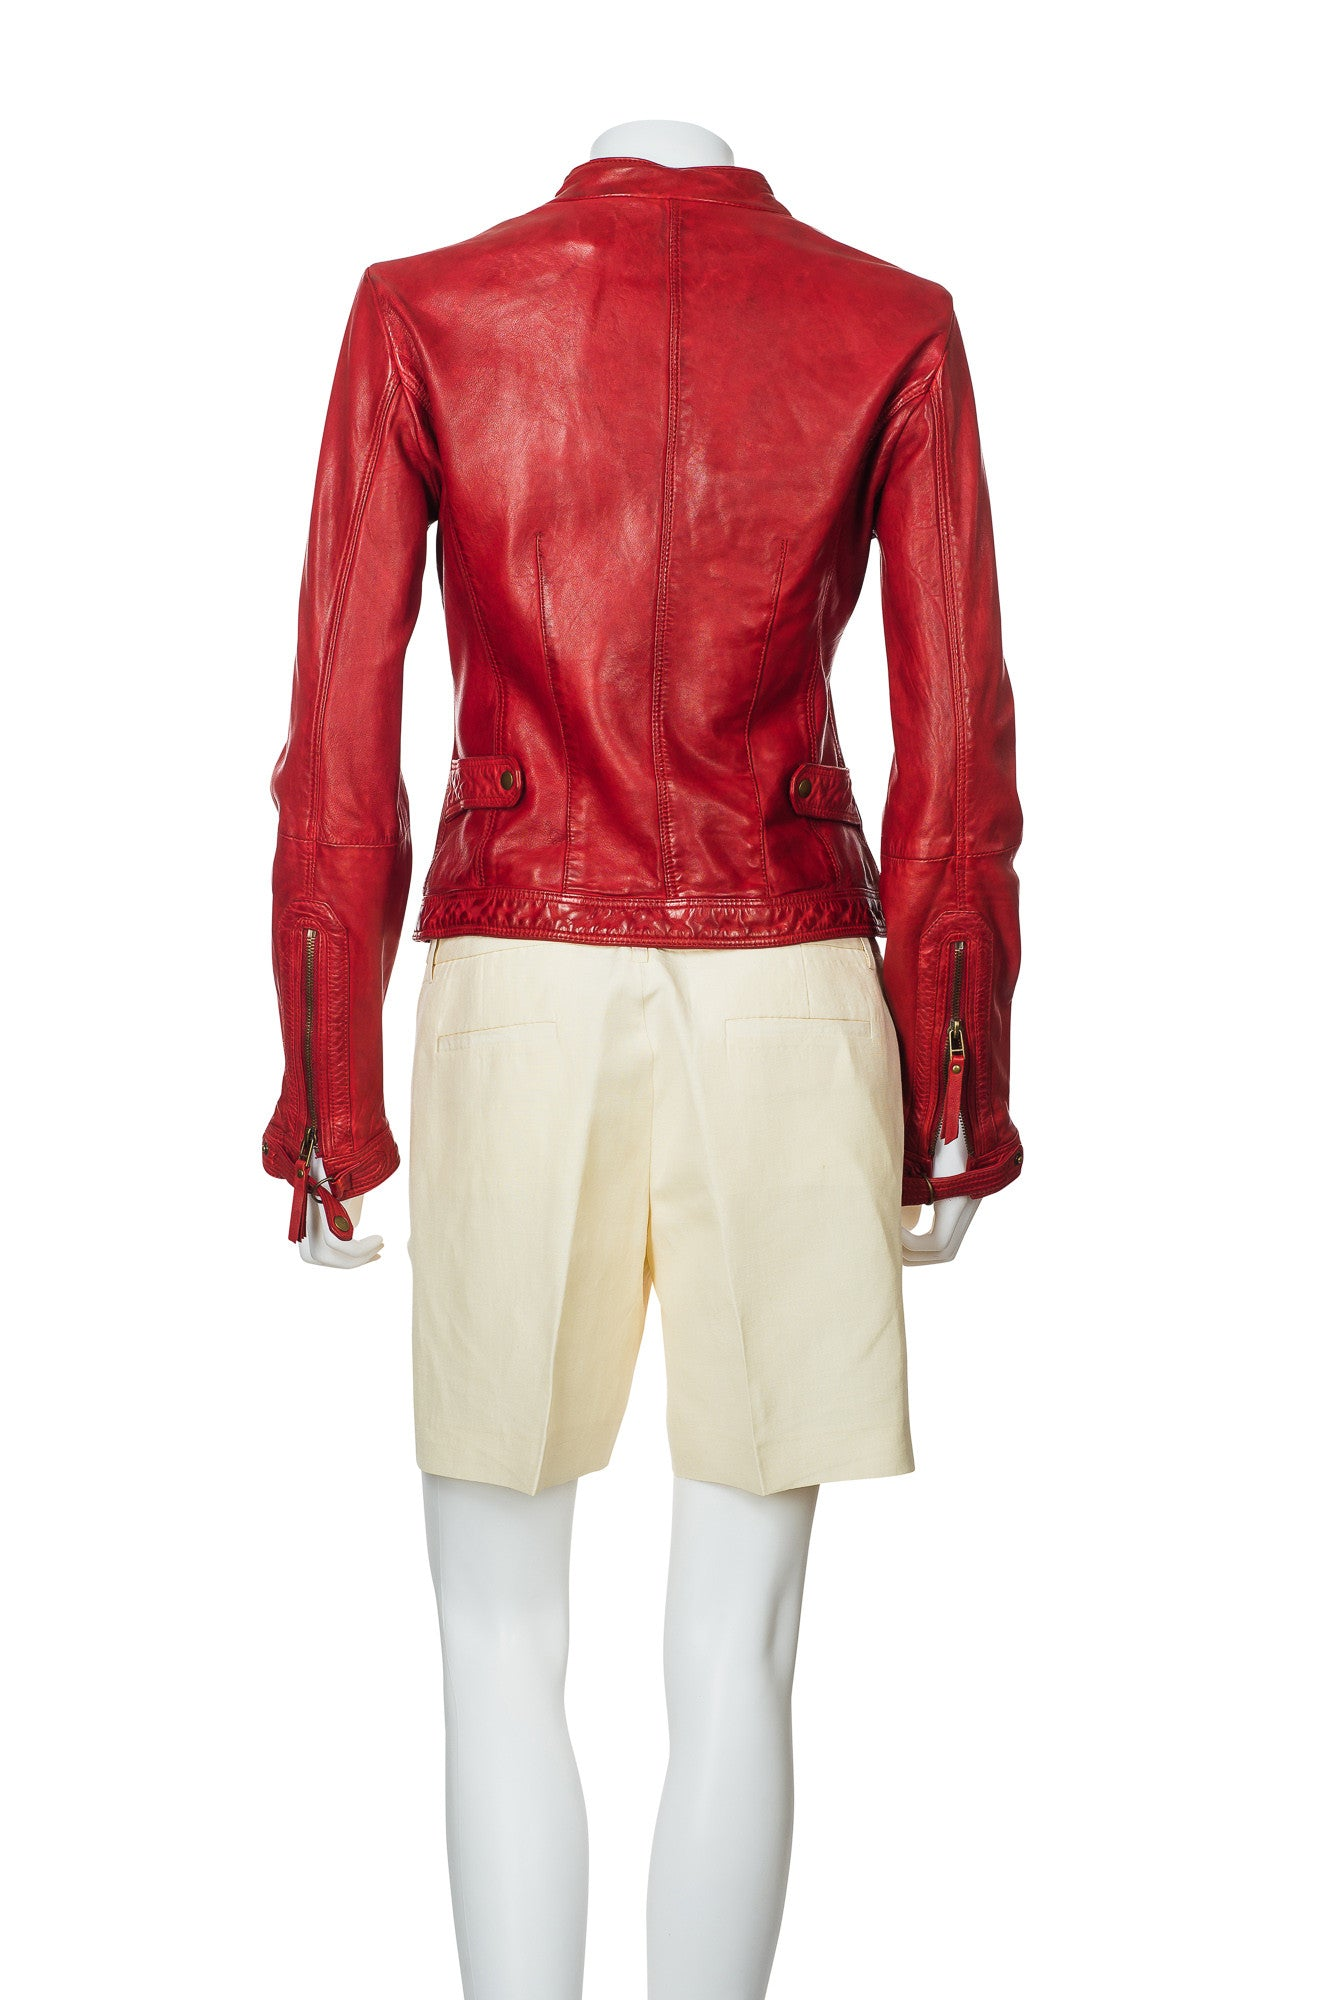 Massimo Dutti Red Leather Jacket